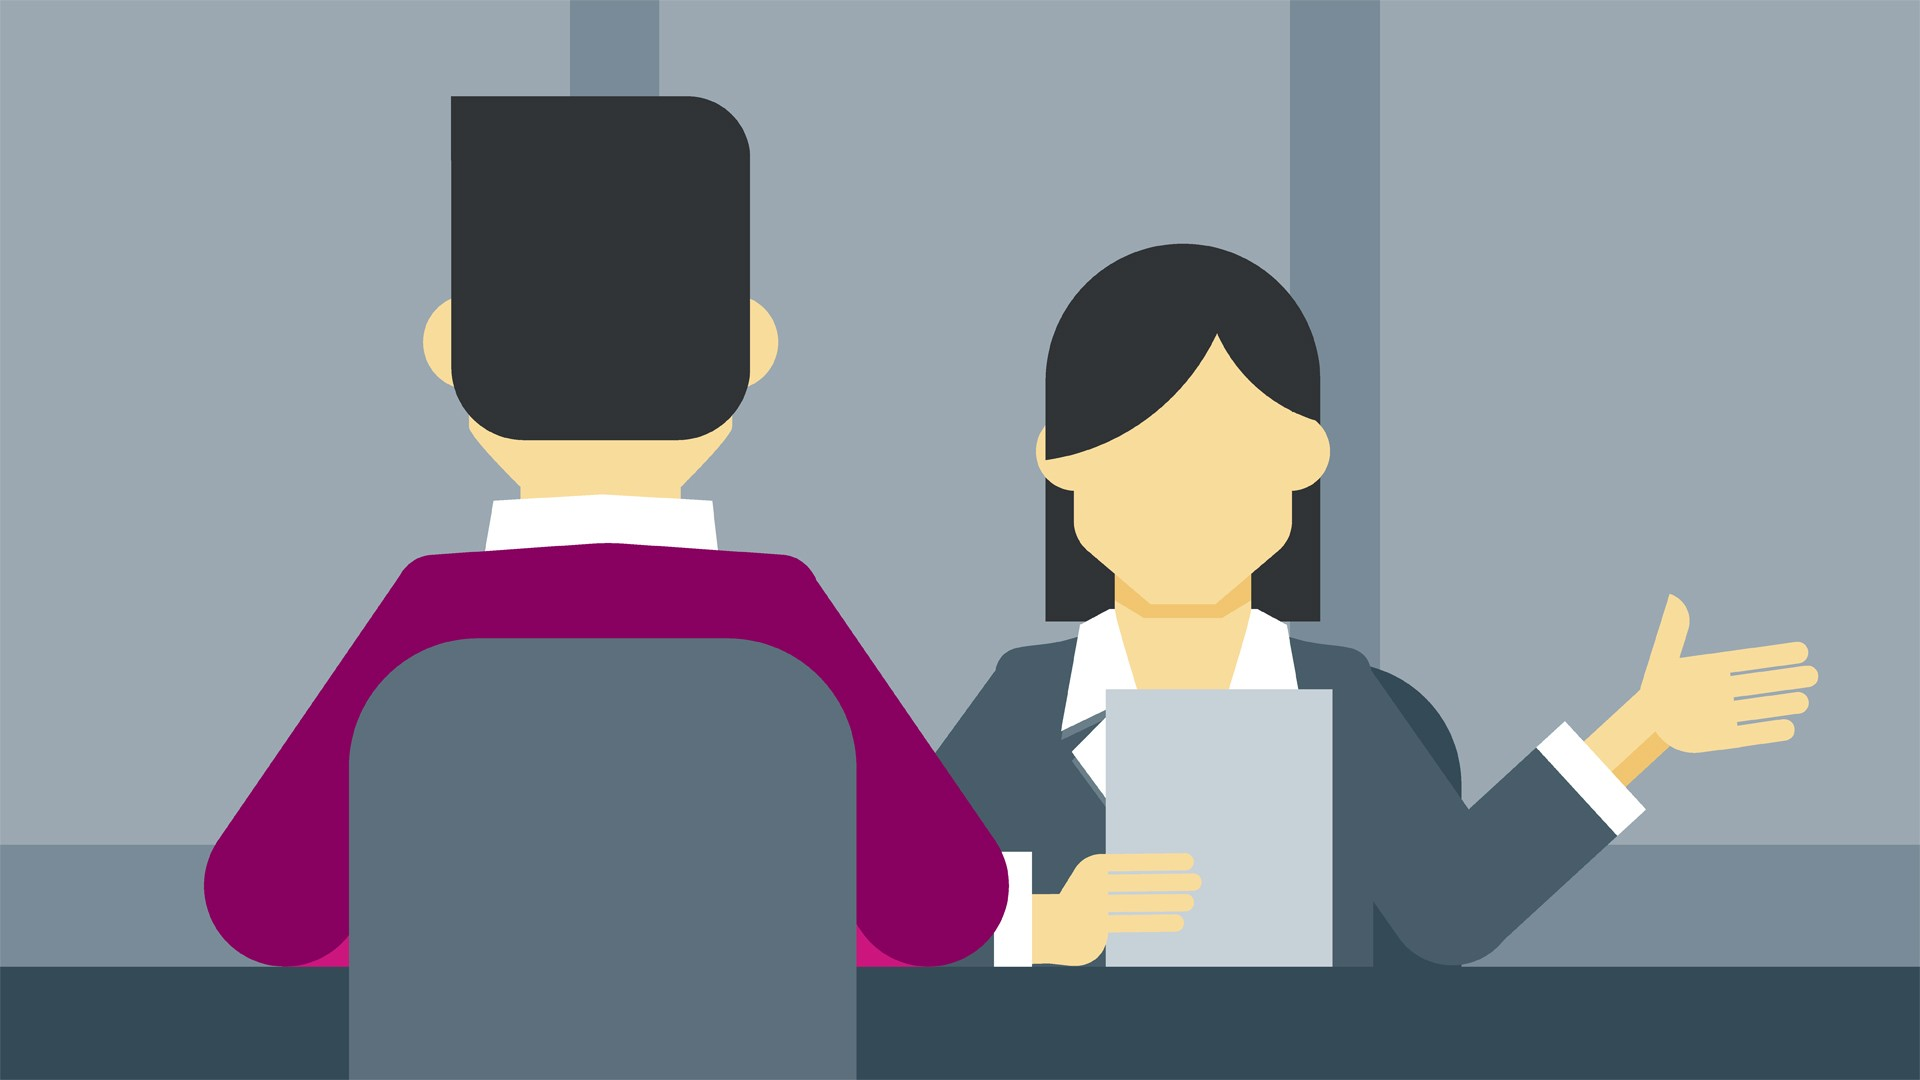 Interview clipart college interview. Questions